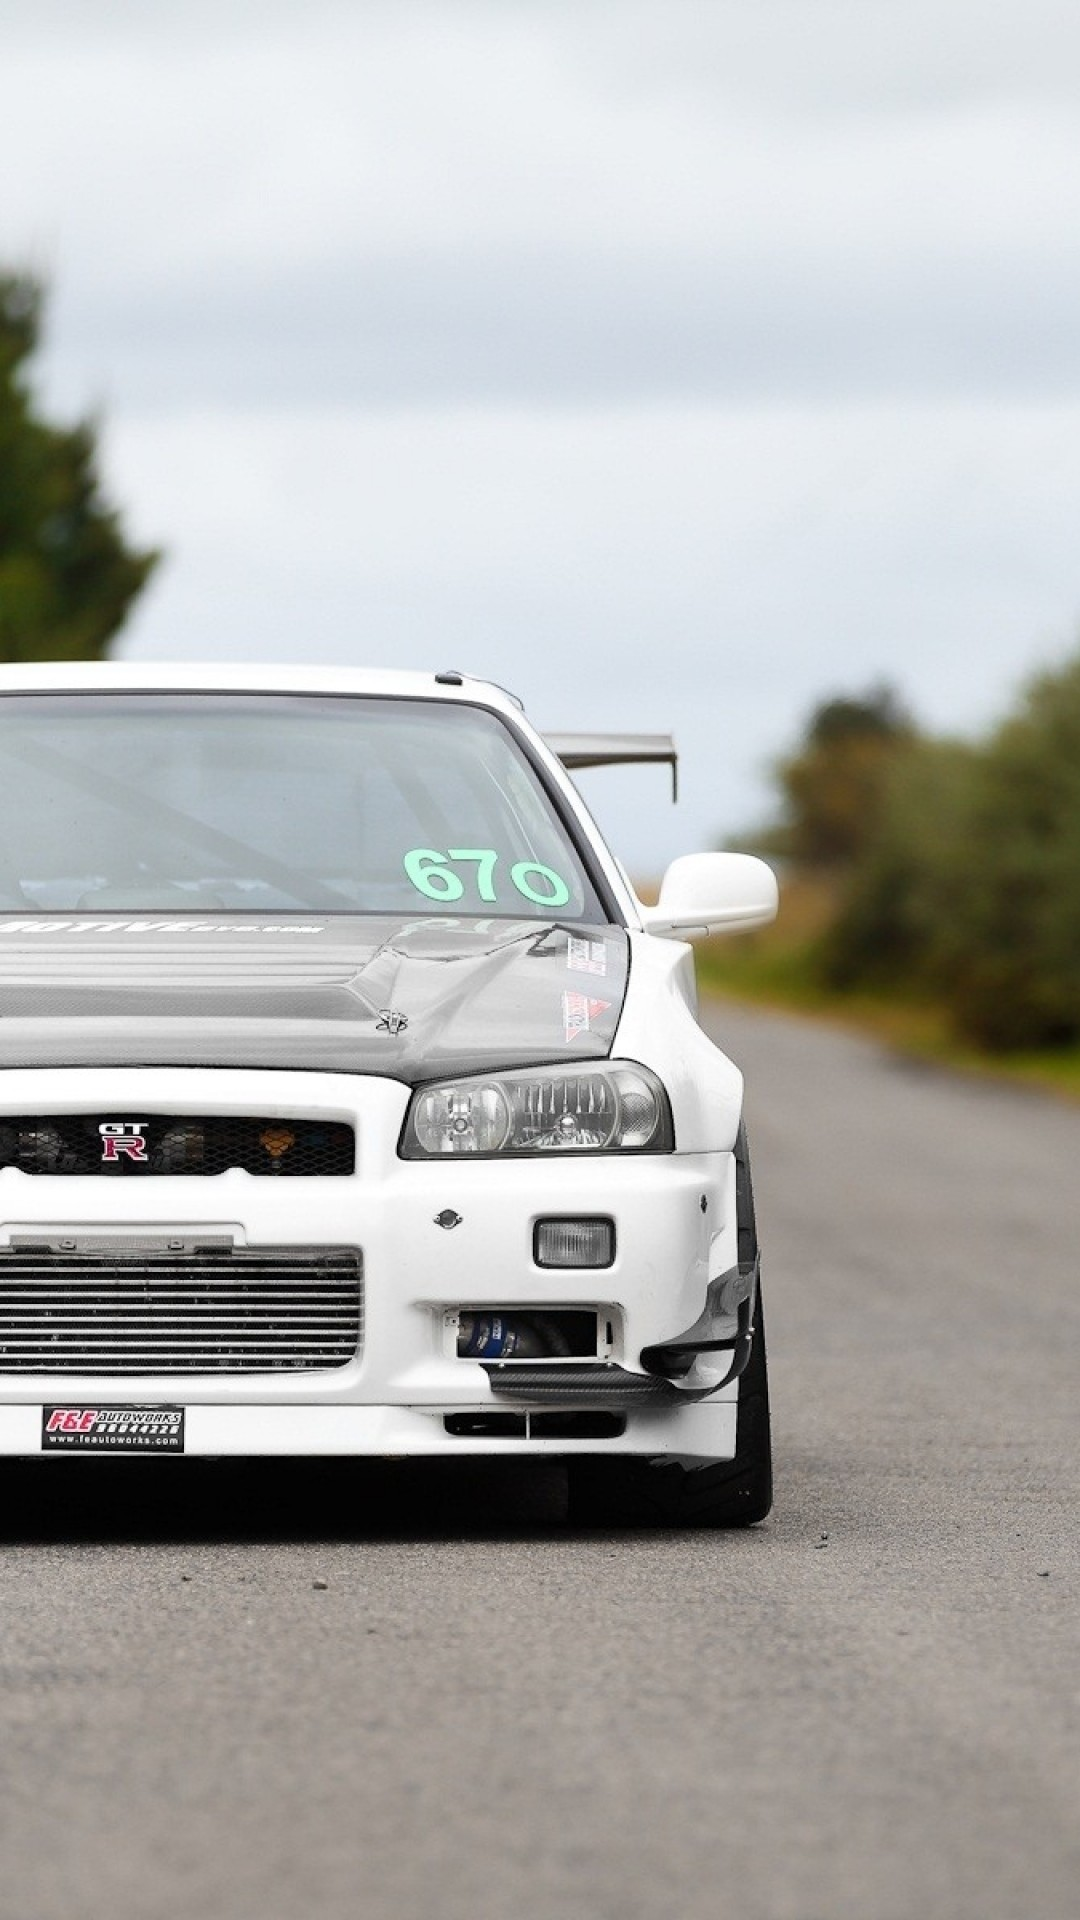 Nissan Skyline Gt-r, Rally, Cars, White